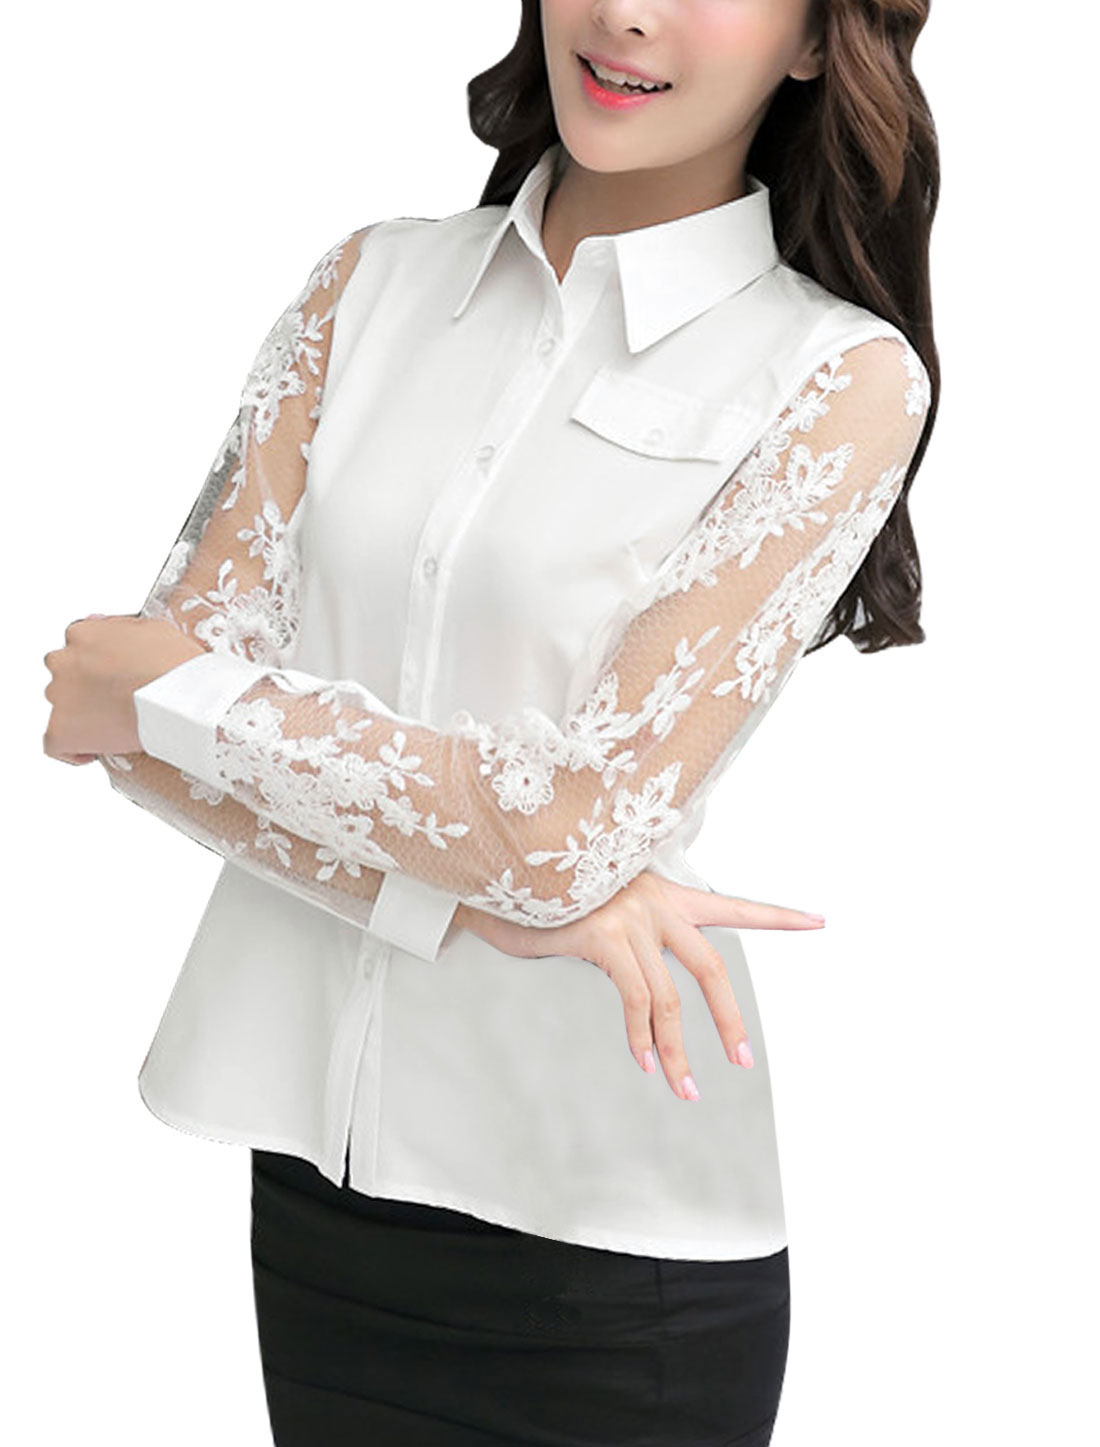 Women Mesh Panel Single Breasted Mock Pocket Shirt White M